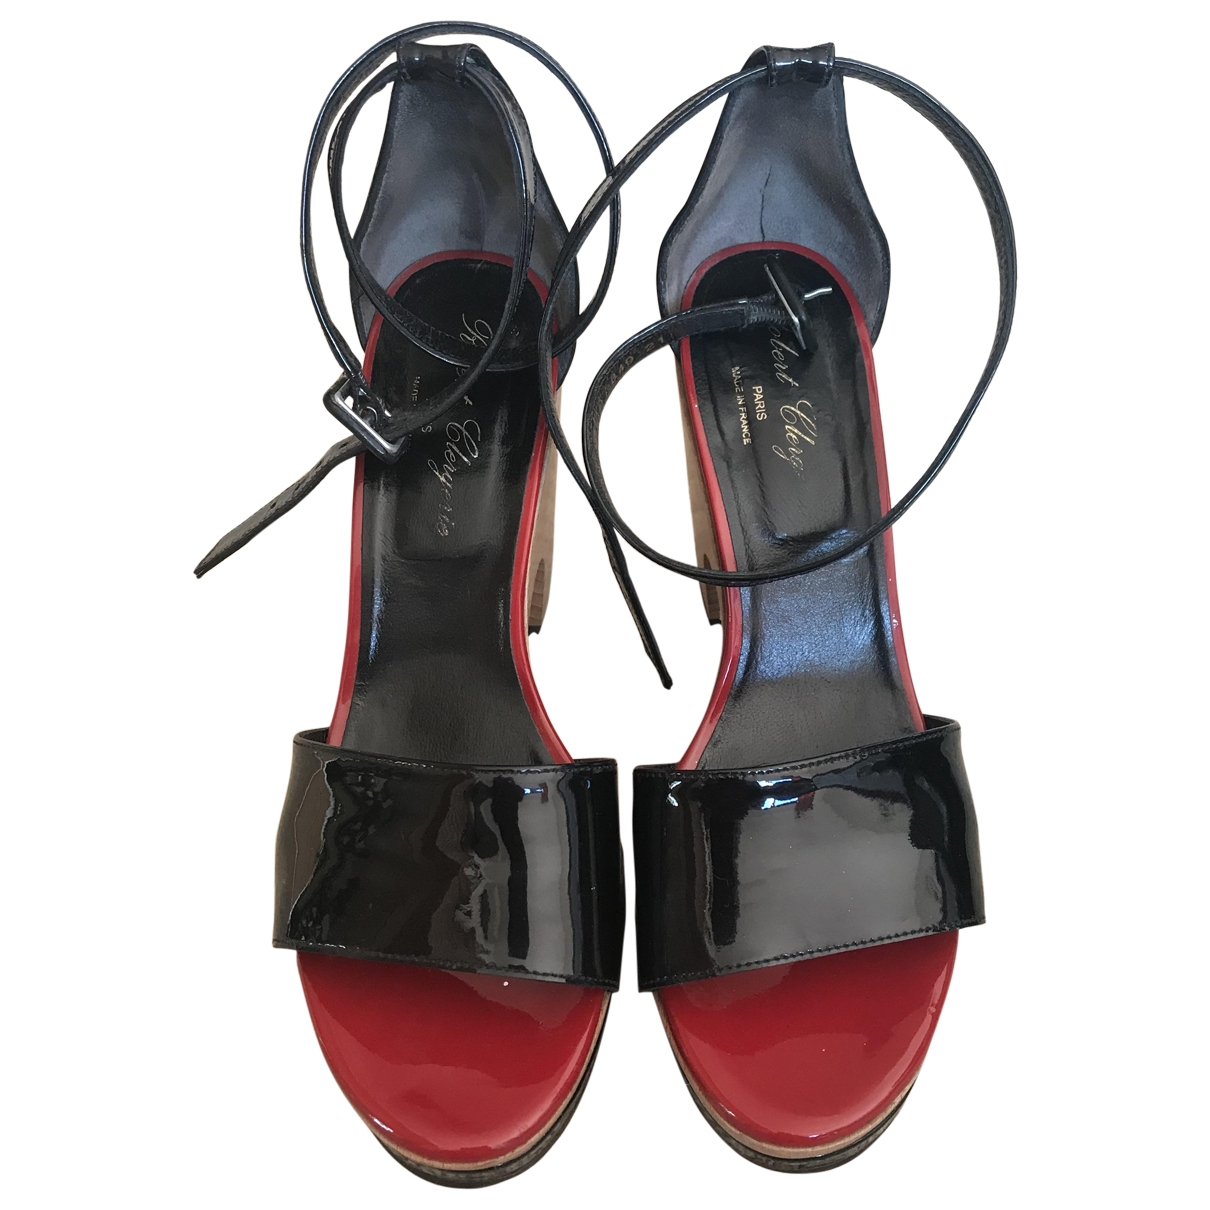 Robert Clergerie \N Black Patent leather Sandals for Women 38 EU